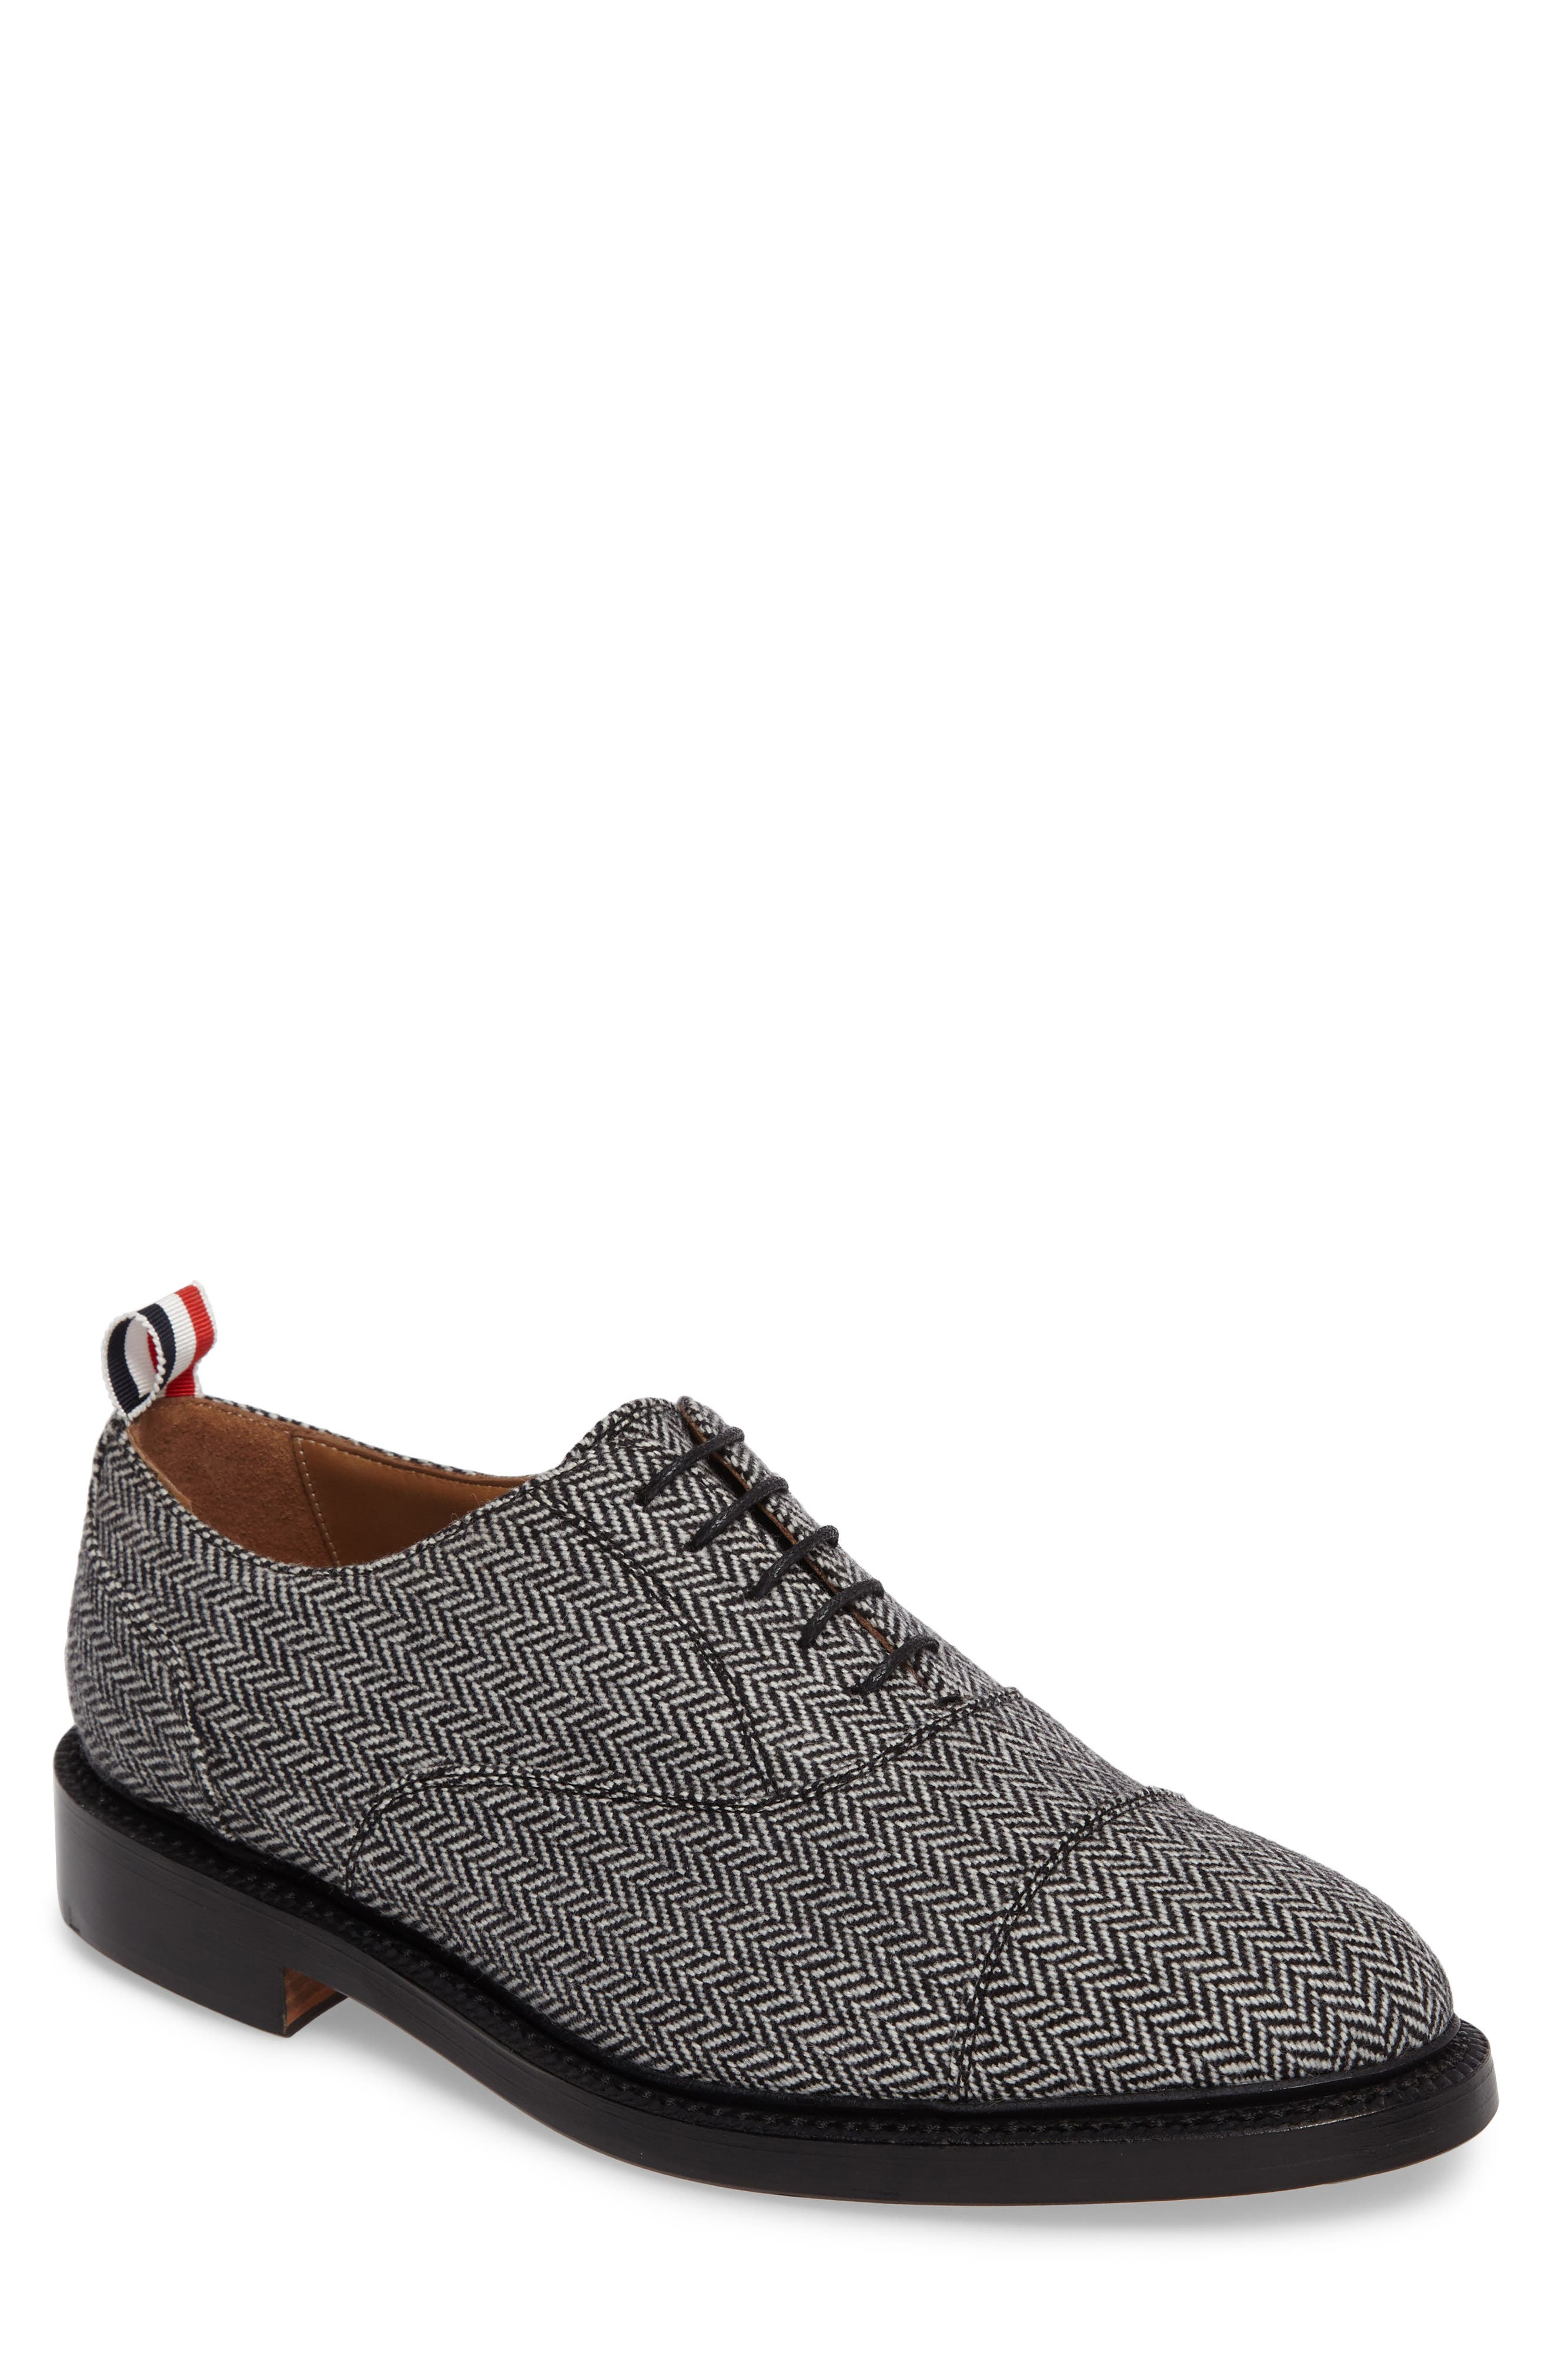 Thom Browne Cap Toe Oxford (Men)